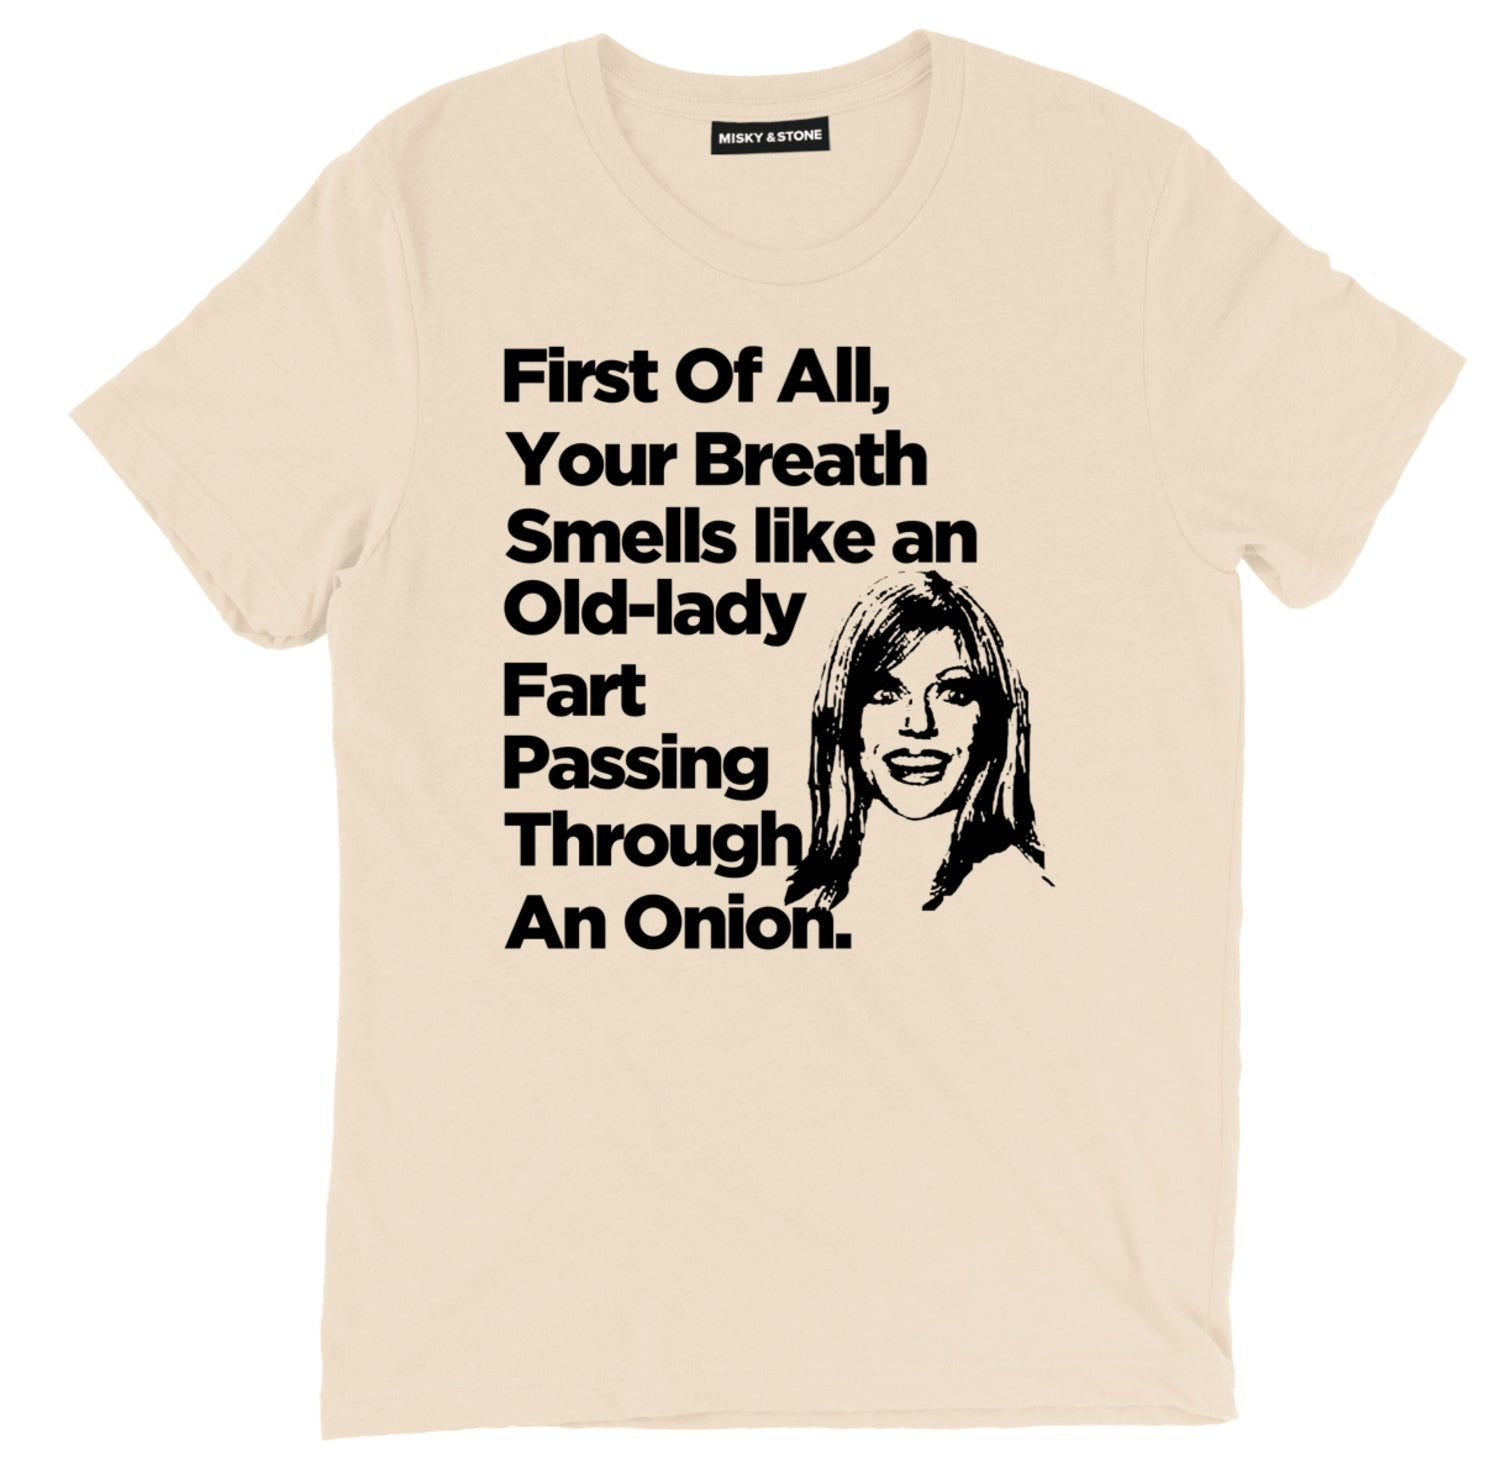 First Of All Your Breath Smells Like An Old Lady Fart T Shirt